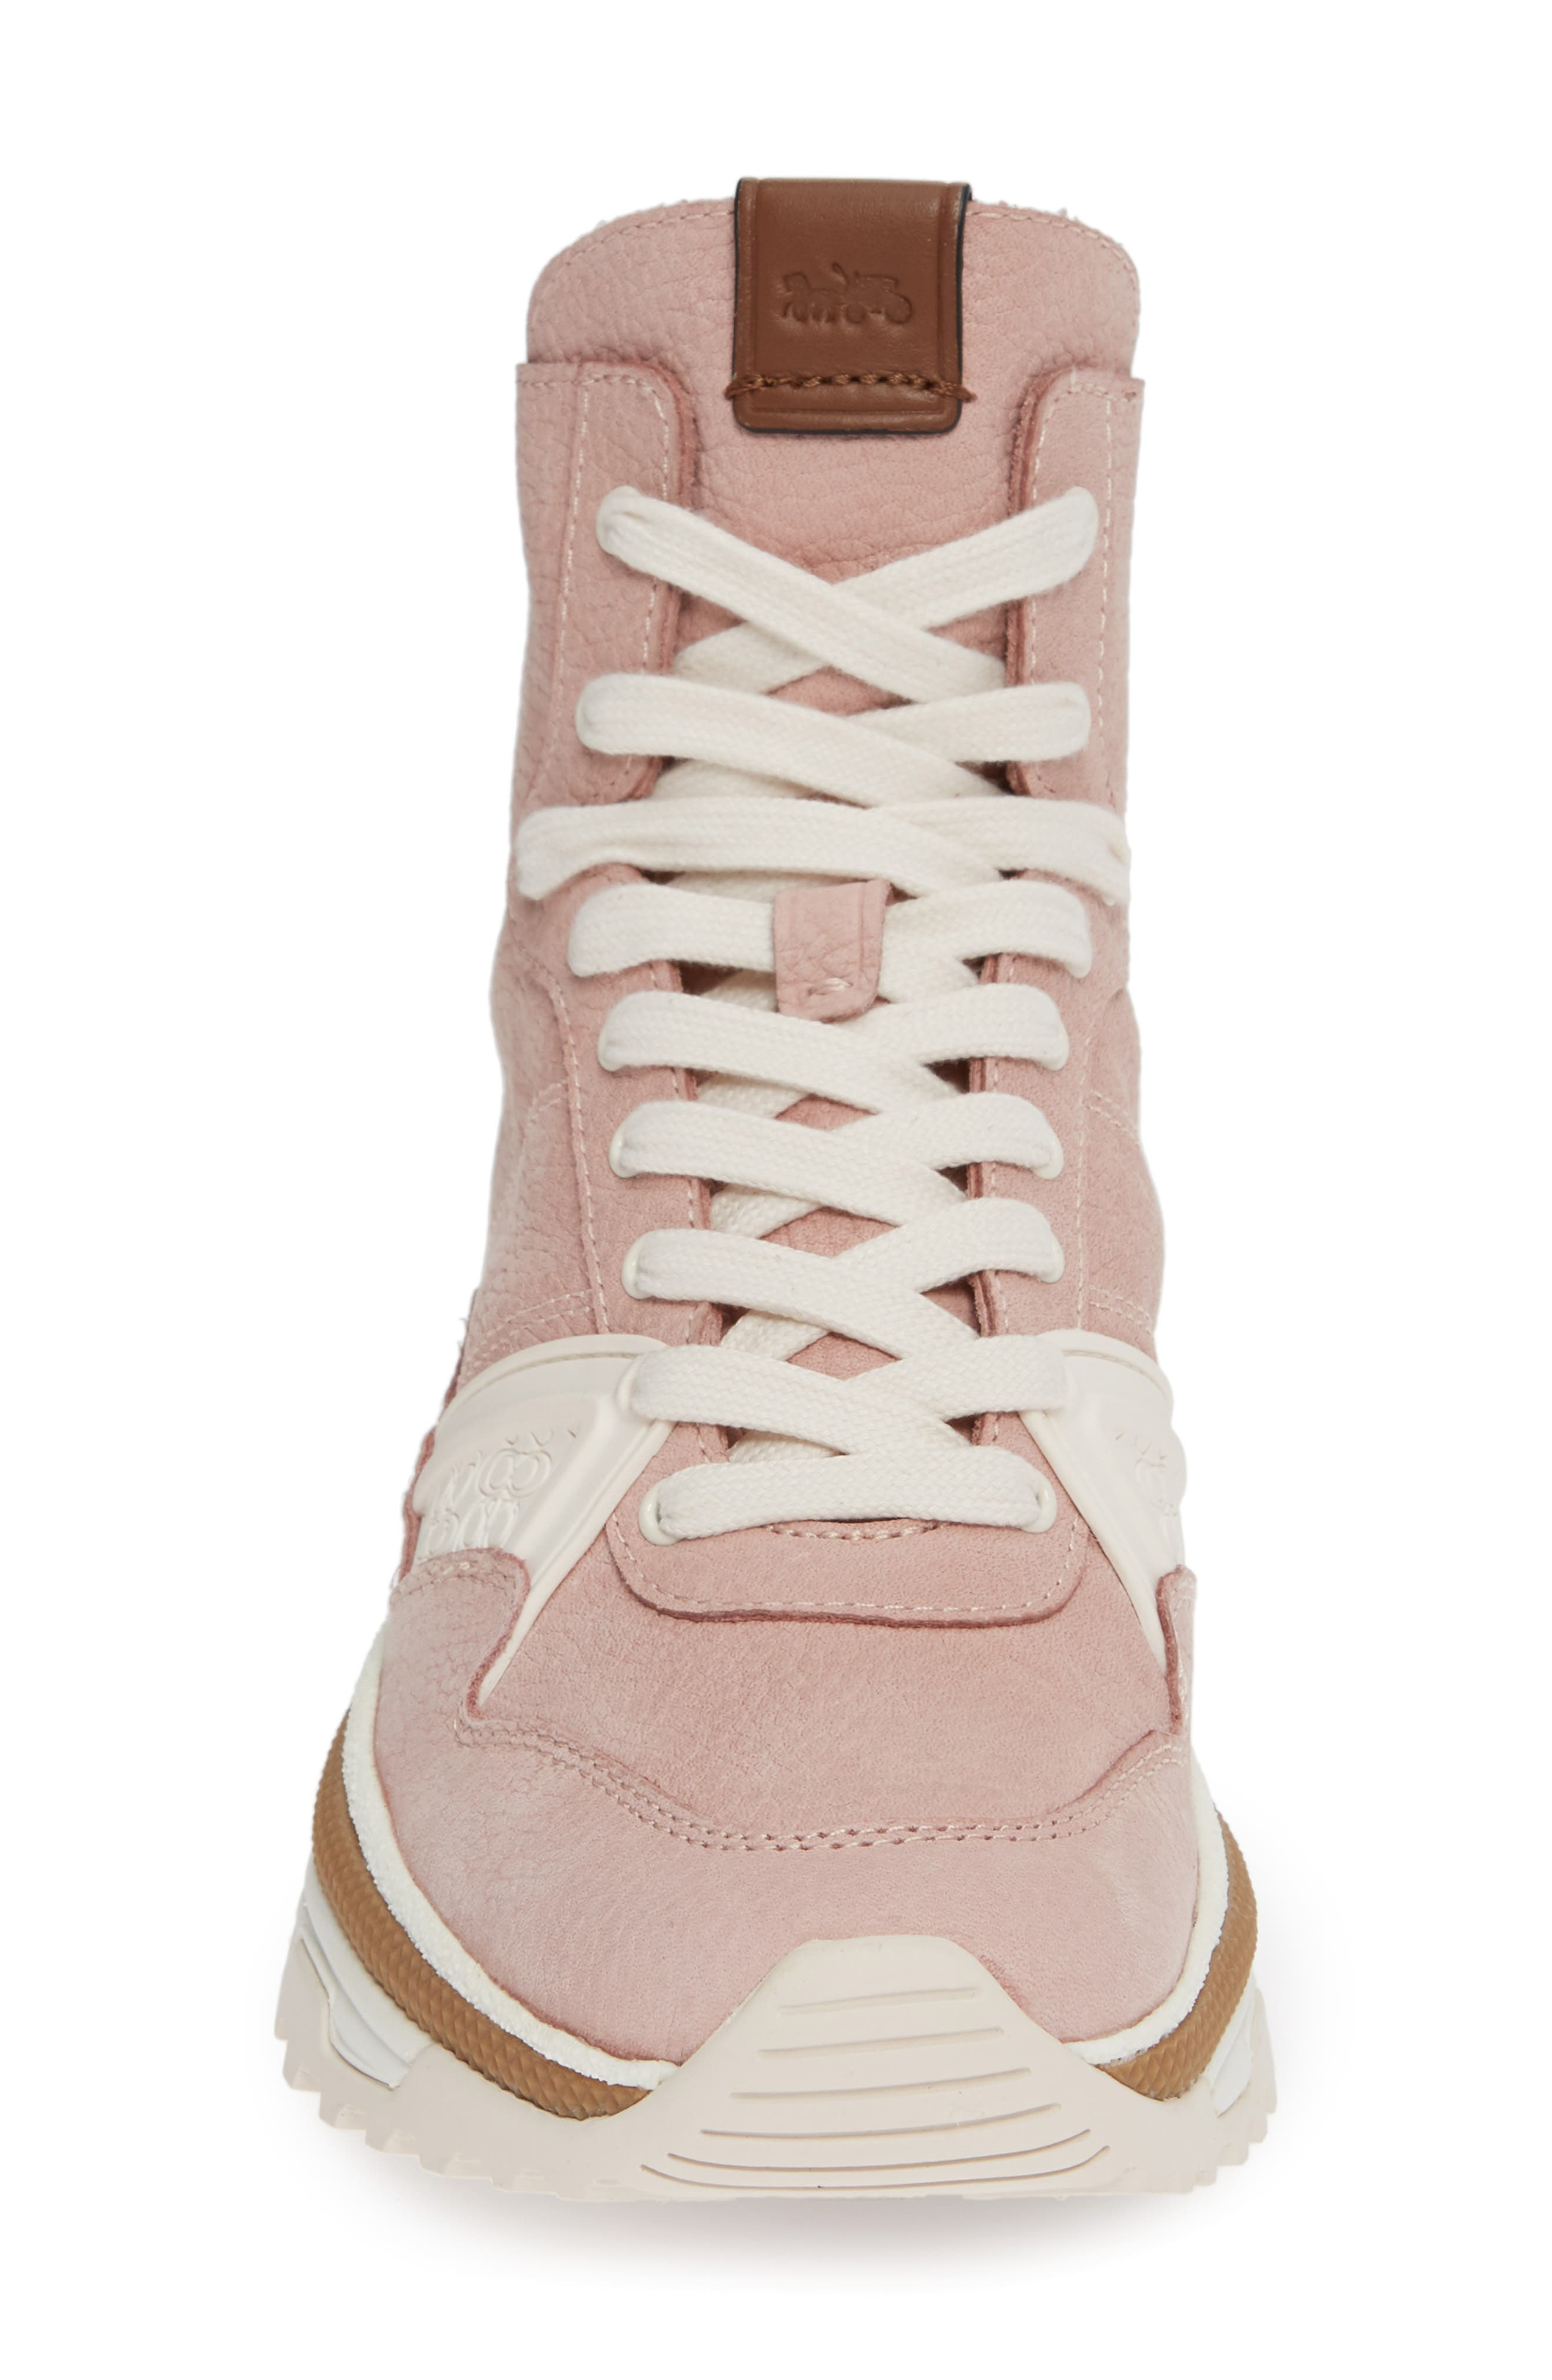 COACH,                             High Top Sneaker,                             Alternate thumbnail 4, color,                             BLUSH PINK NUBUCK LEATHER